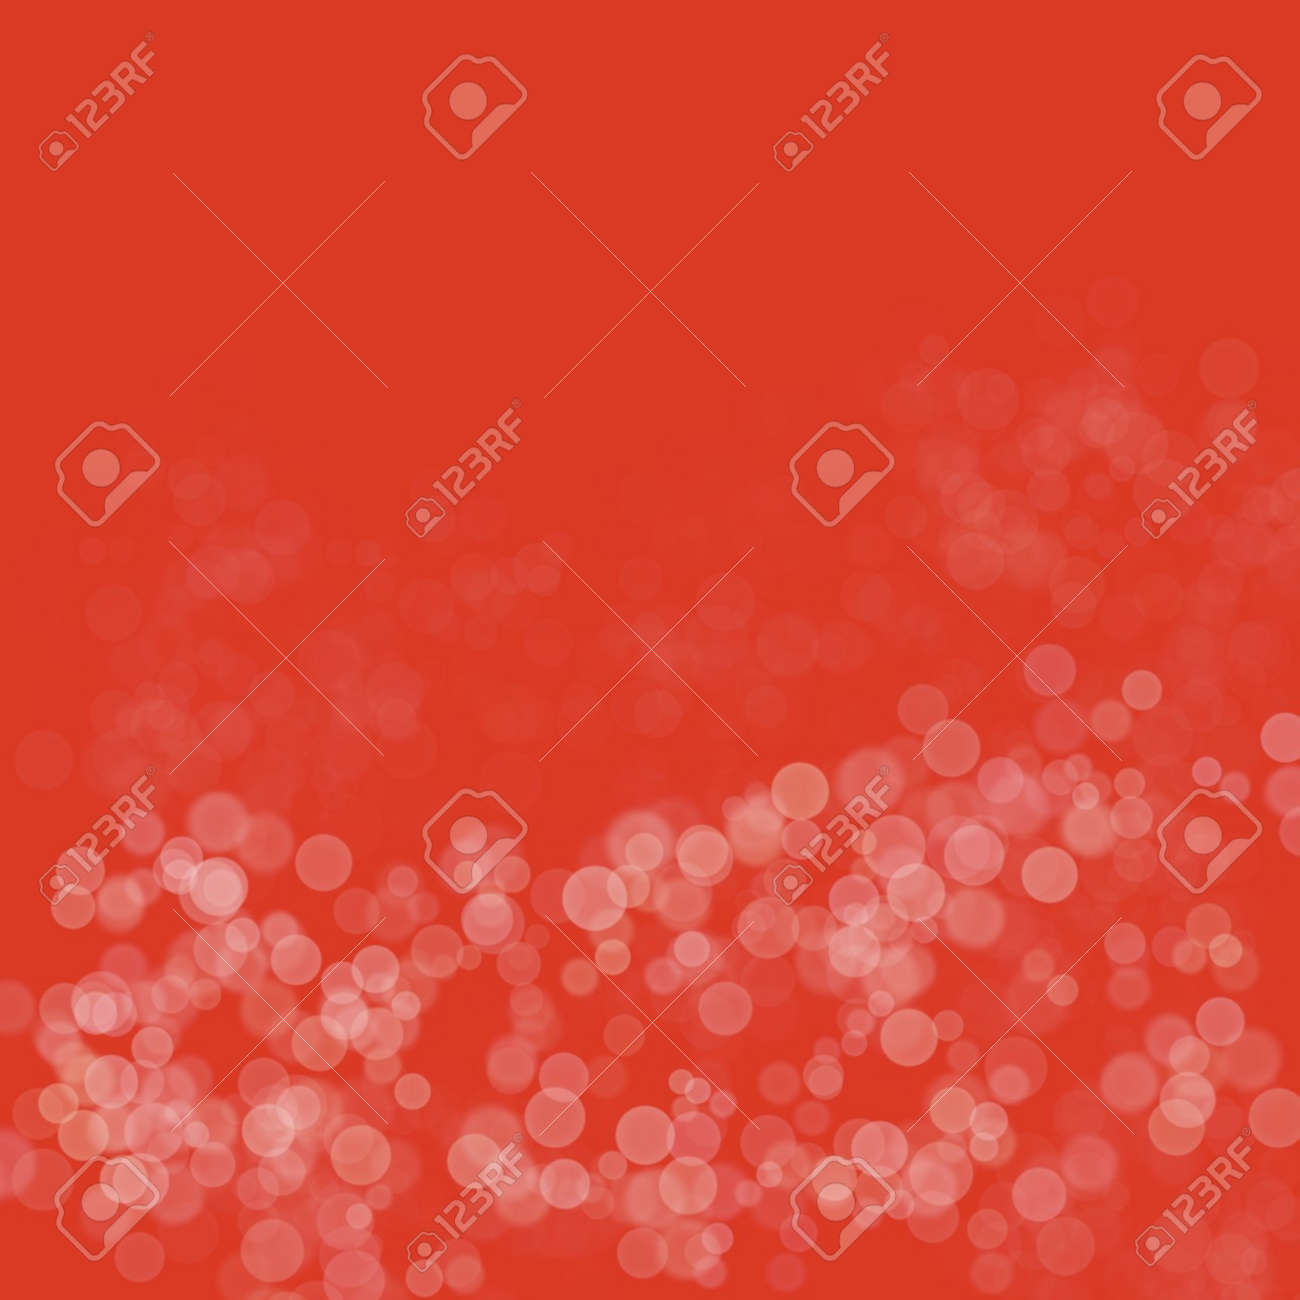 dot soft light white color Paint on red paper background abstract pattern artwork Contemporary arts, Artistic paper, space for frame copy write postcard, bright bokeh - 157168598